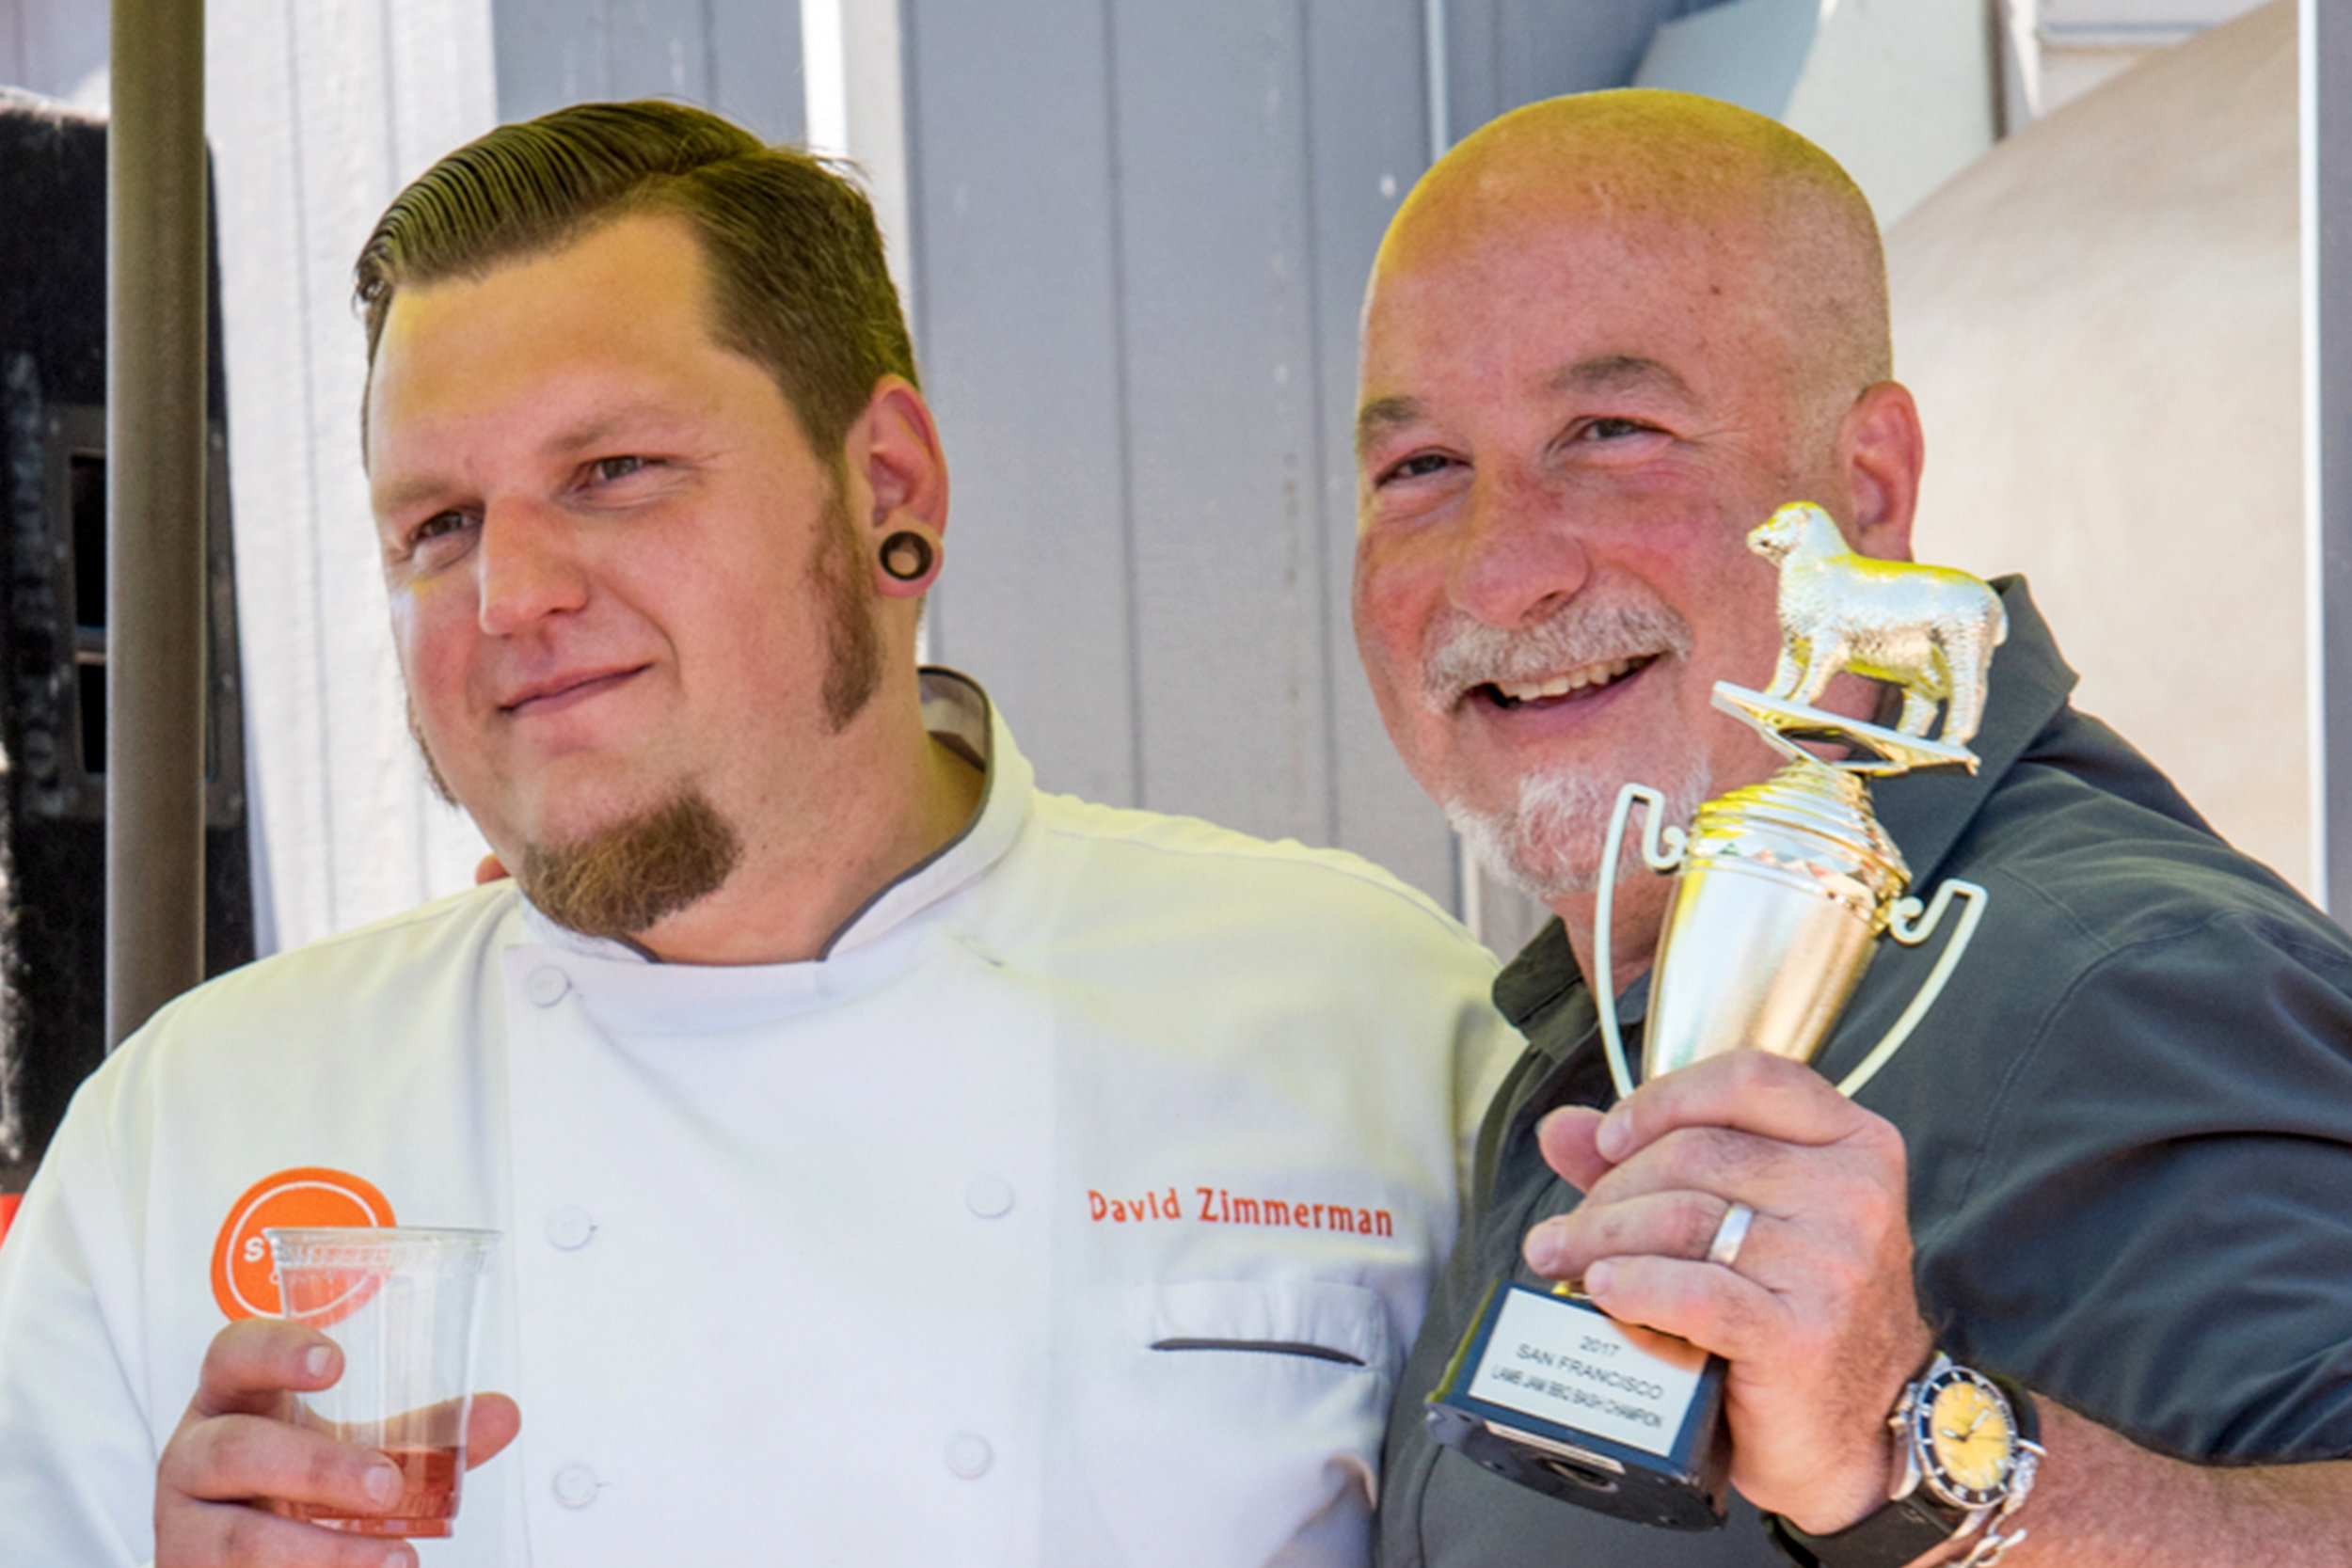 San Francisco - 2017 - 2017 Lamb Jam Master Chef Mark Stark (right) and Chef de Cuisine David Zimmerman from Bird & The Bottle accepting Best in Show trophy at 2017 San Francisco Lamb Jam.  Chef Stark went on to be crowned 2017 Lamb Jam Master at Lamb Jam Finale which took place at the Music City Food & Wine Fest.